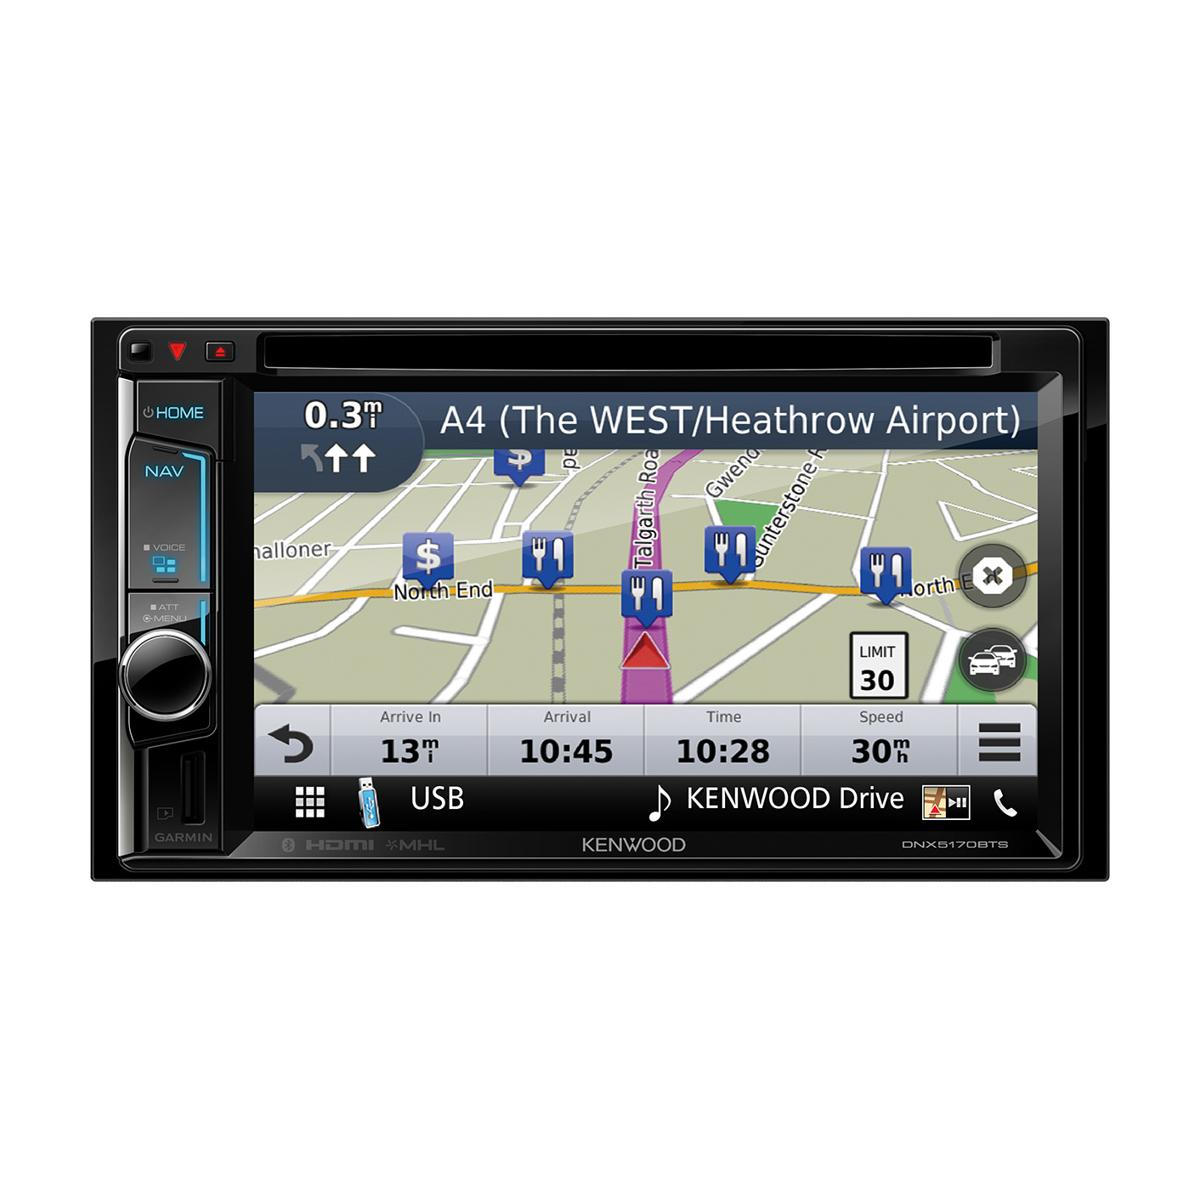 In Car Sat Nav Kenwood Car Audio DNX-5170BTS 2